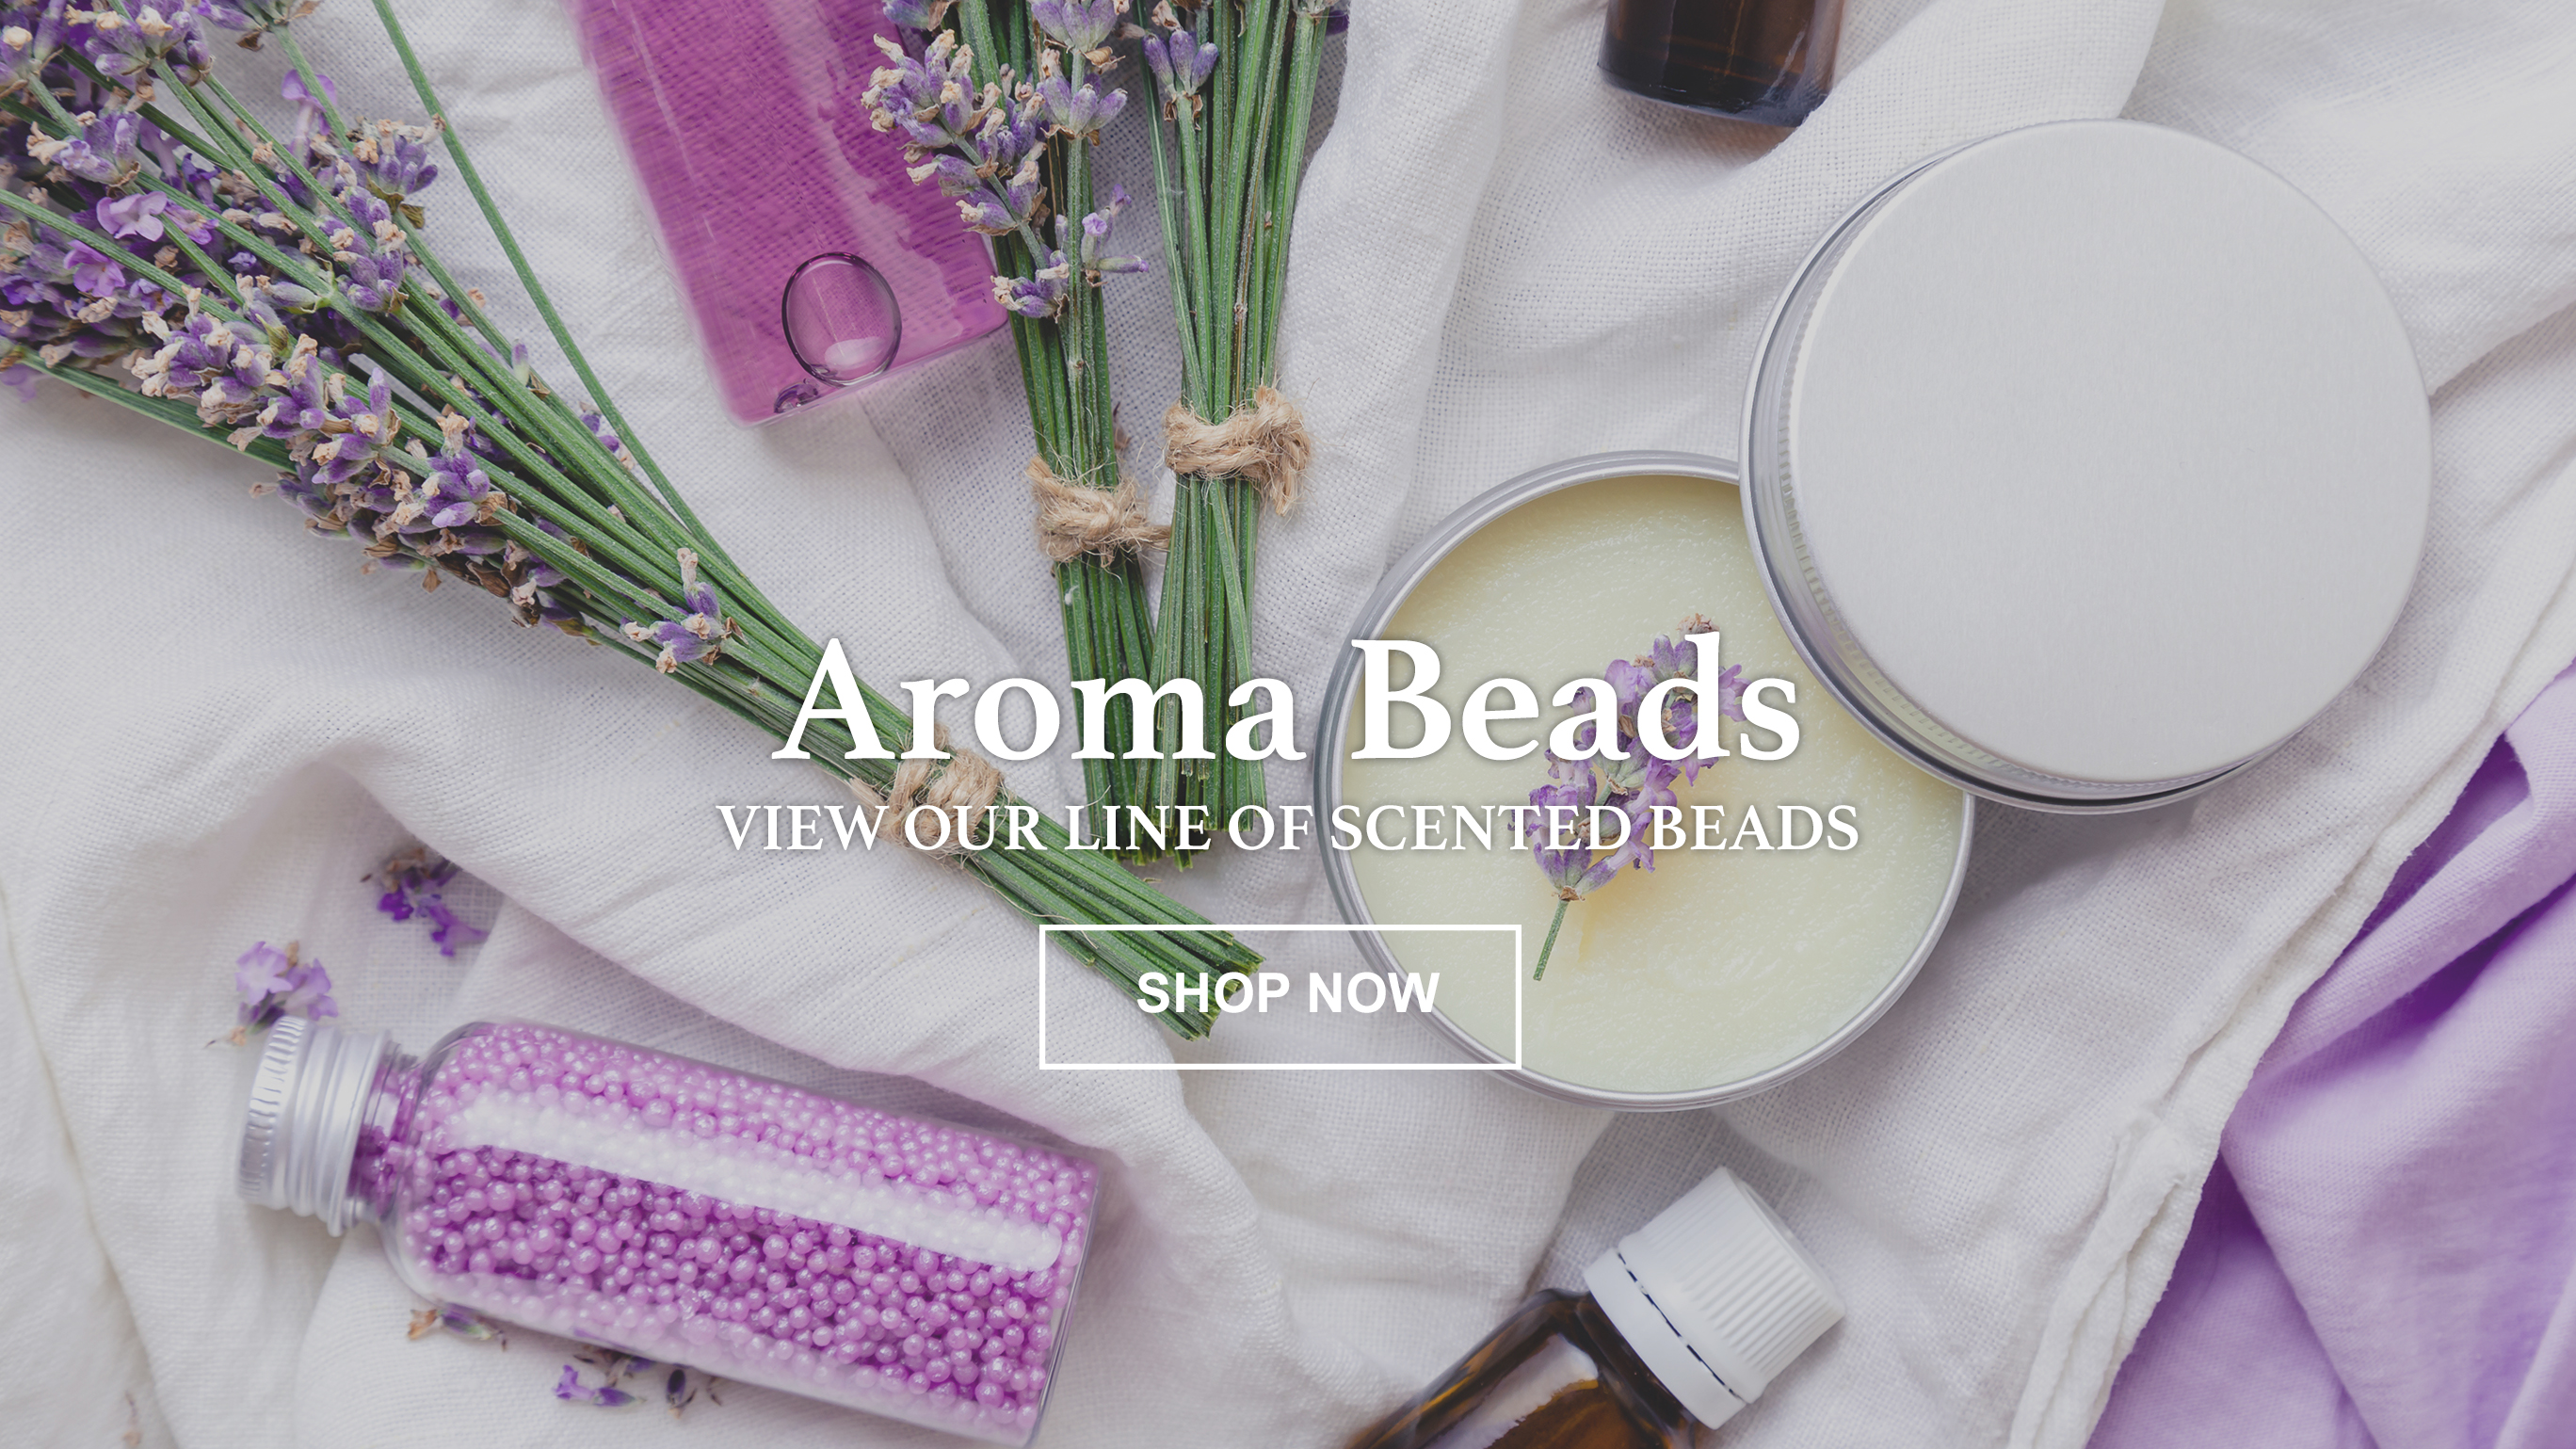 assets/images/Buy It Ship It Header Aroma Beads.jpg